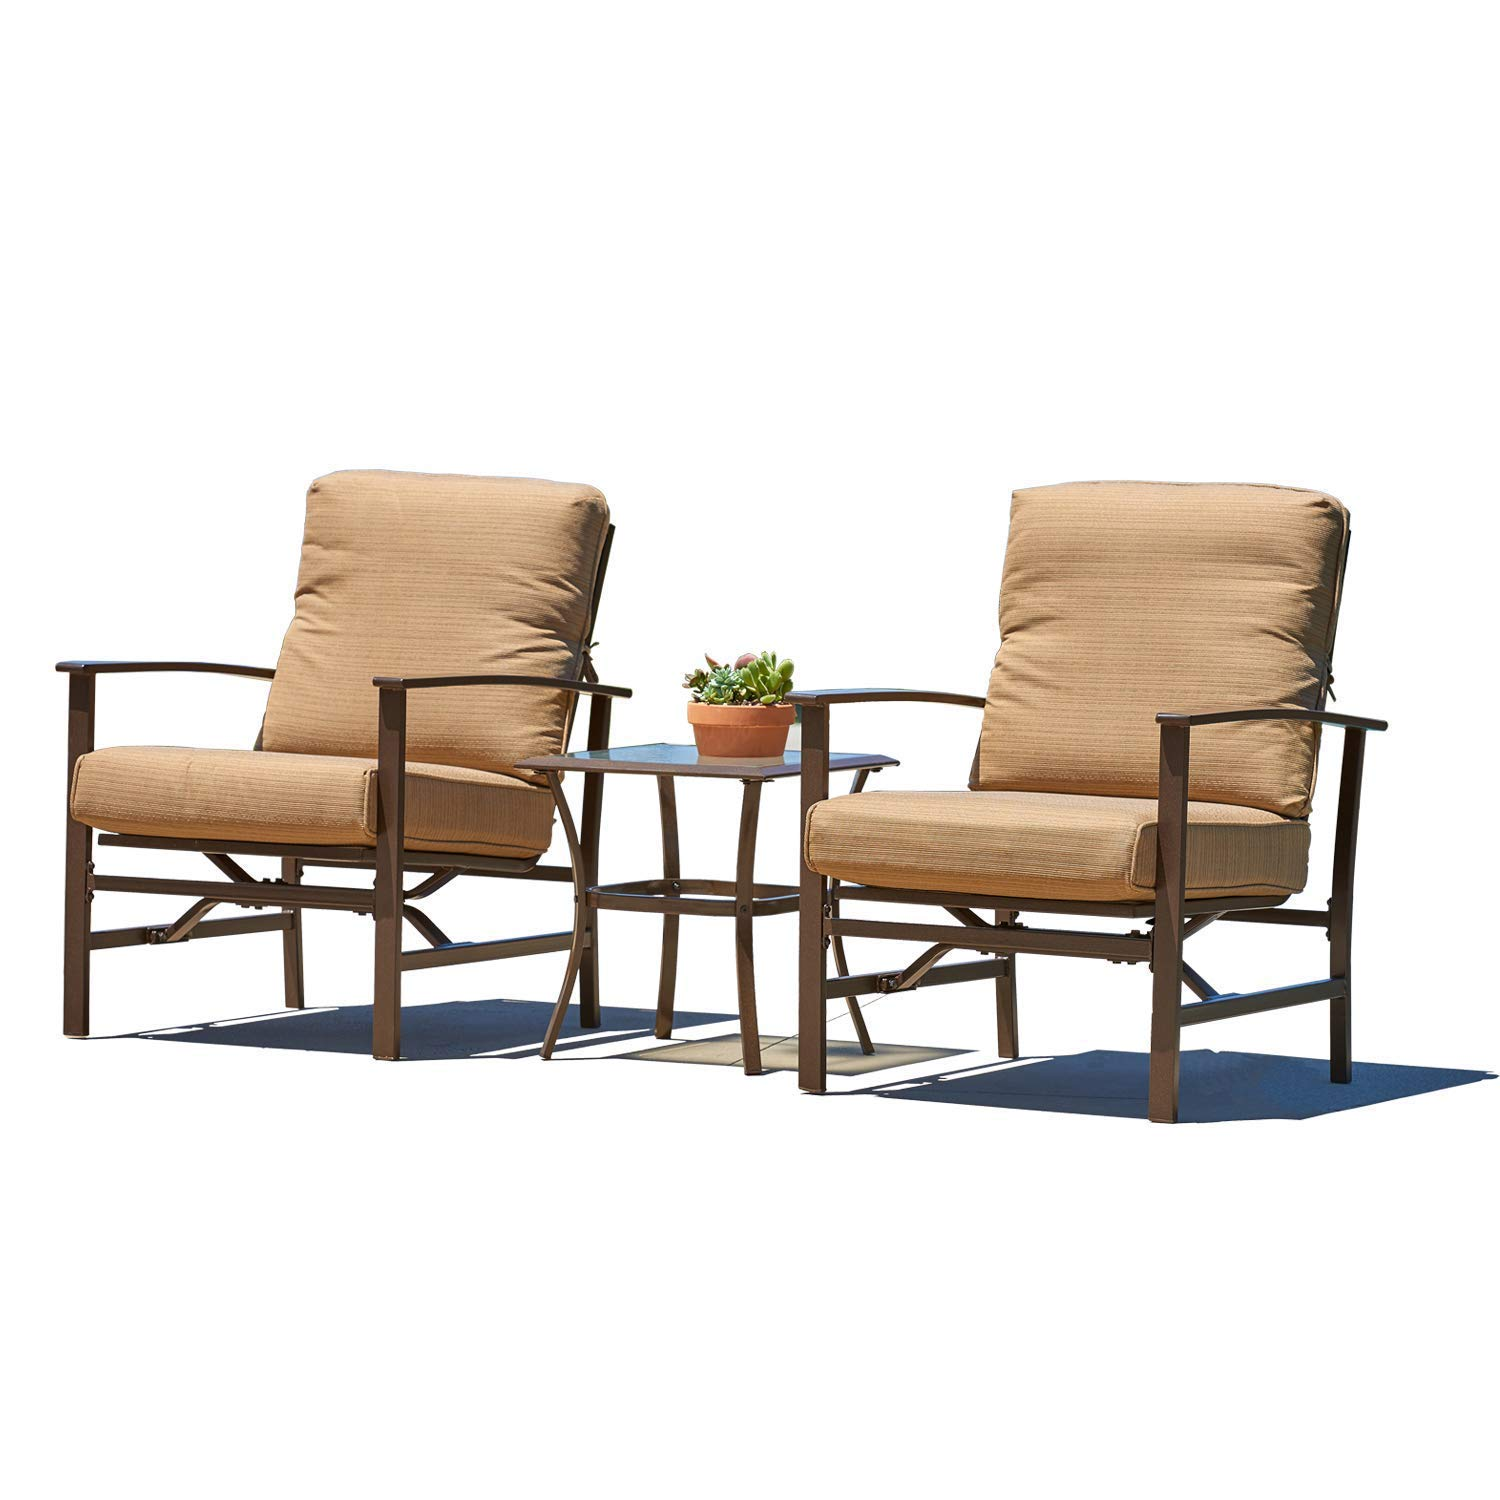 Oakmont 3 Piece Bistro Set Outdoor Furniture Chairs, Glass Top Table with Thick Cushions fit Porch, Garden, Backyard or Pool